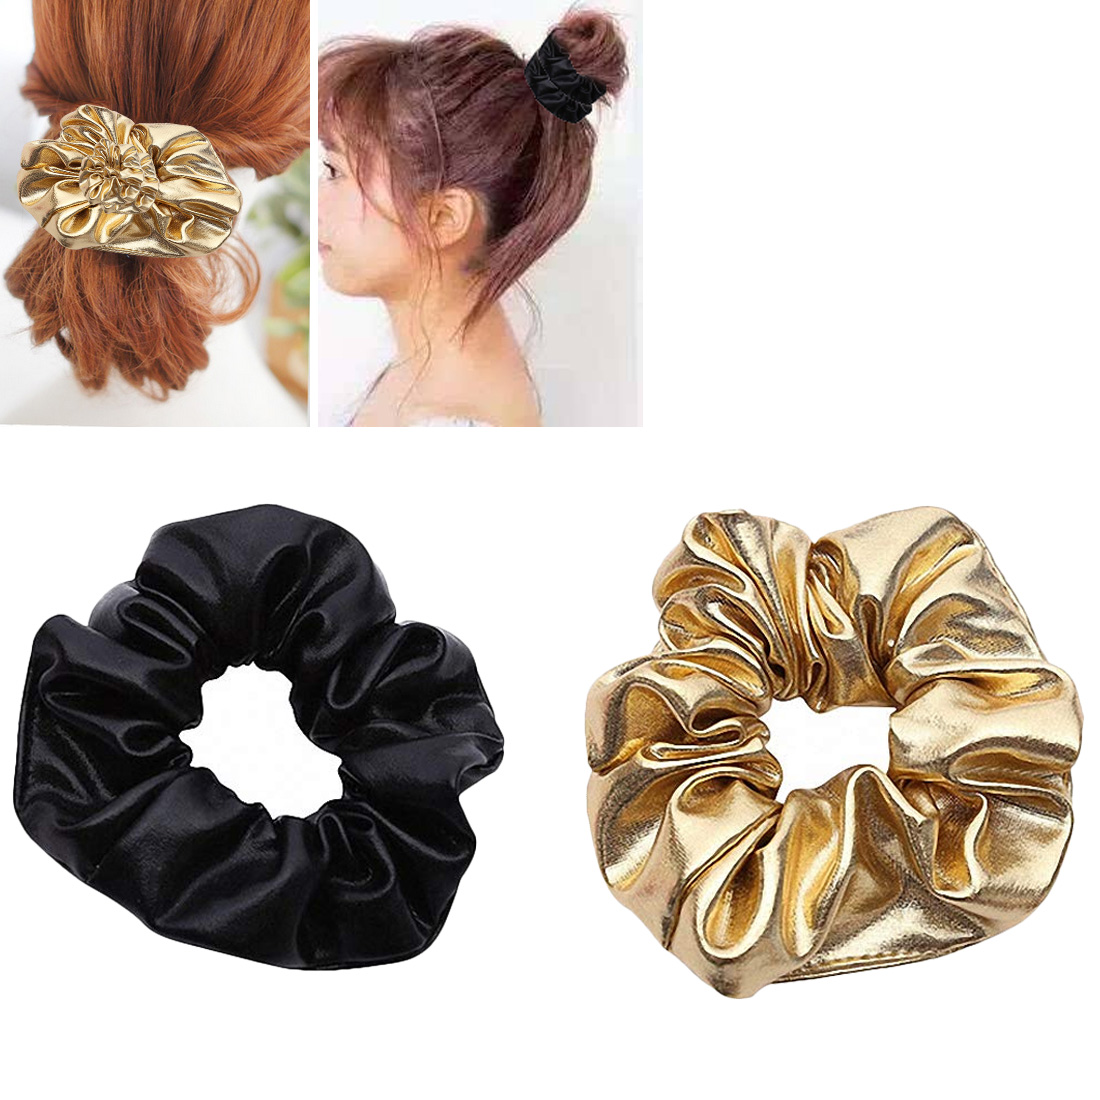 Women PU Faux Leather Elastic Hair Ties Girls Hairband Rope Ponytail Holder Scrunchie Gold Black Headbands Accessories